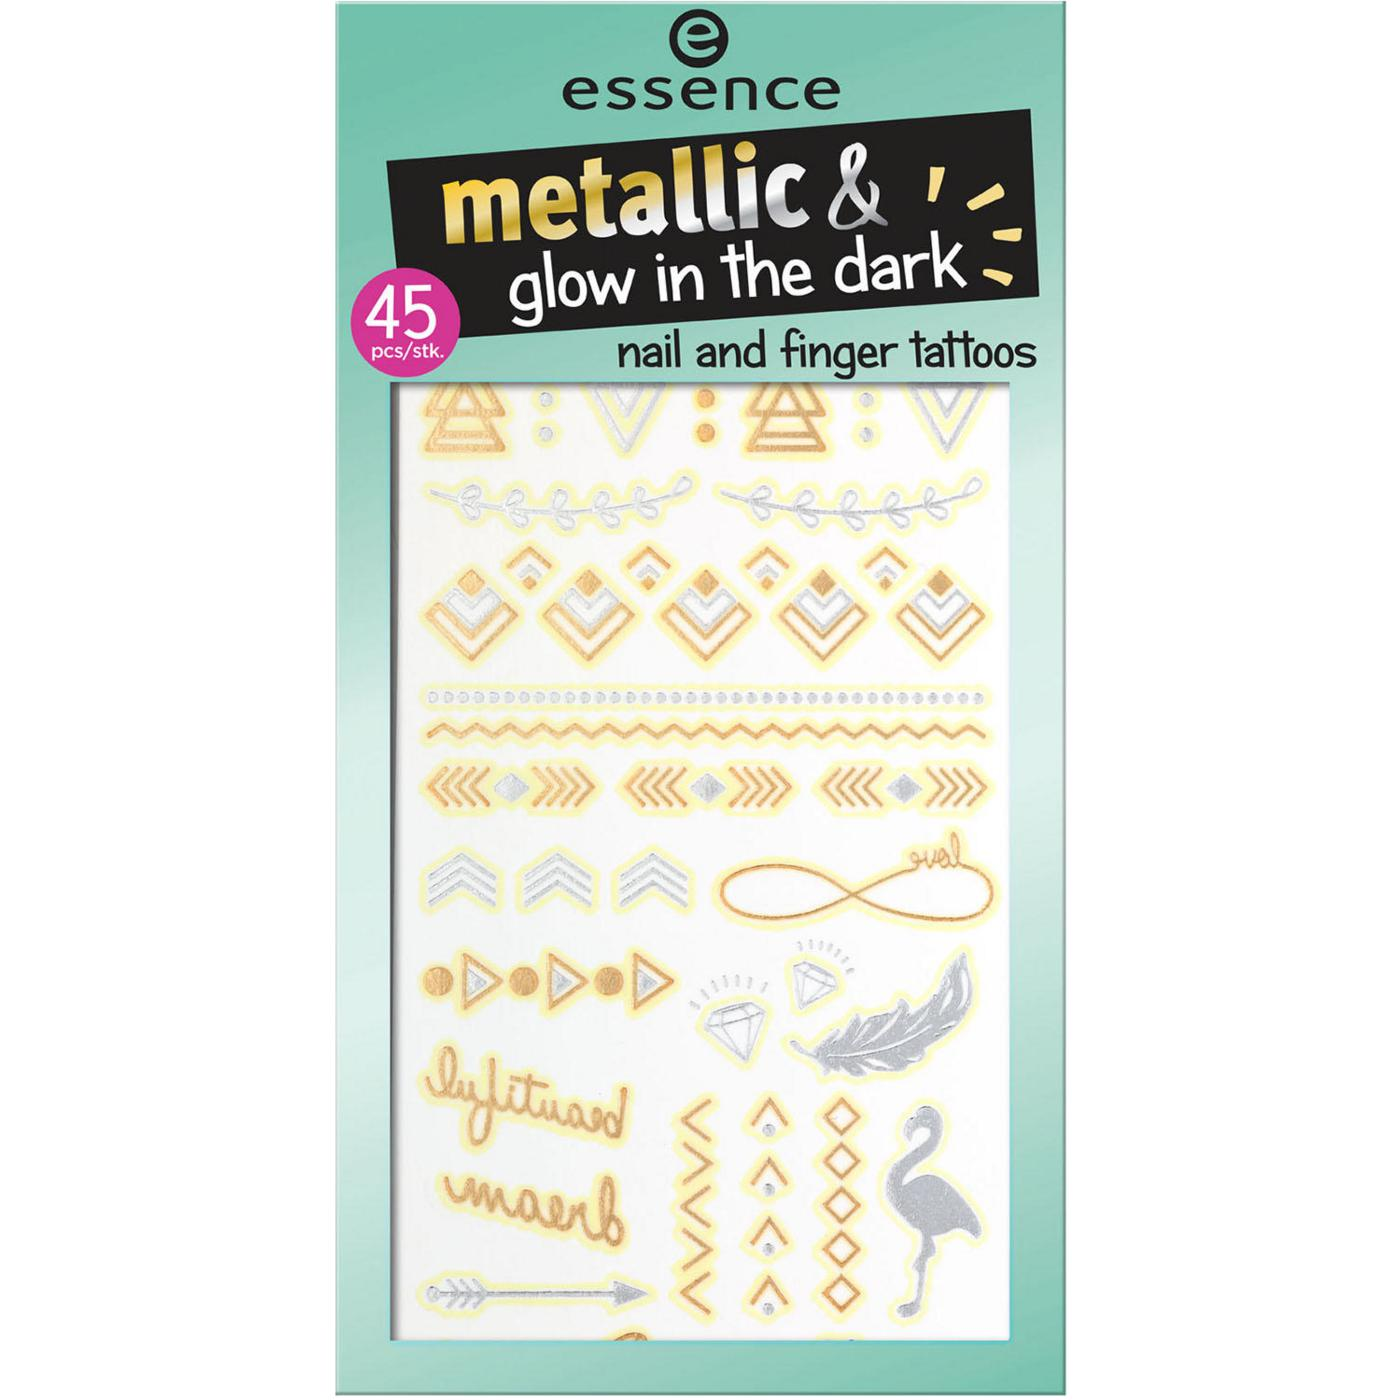 essence metallic & glow in the dark nail and finger tattoos 01